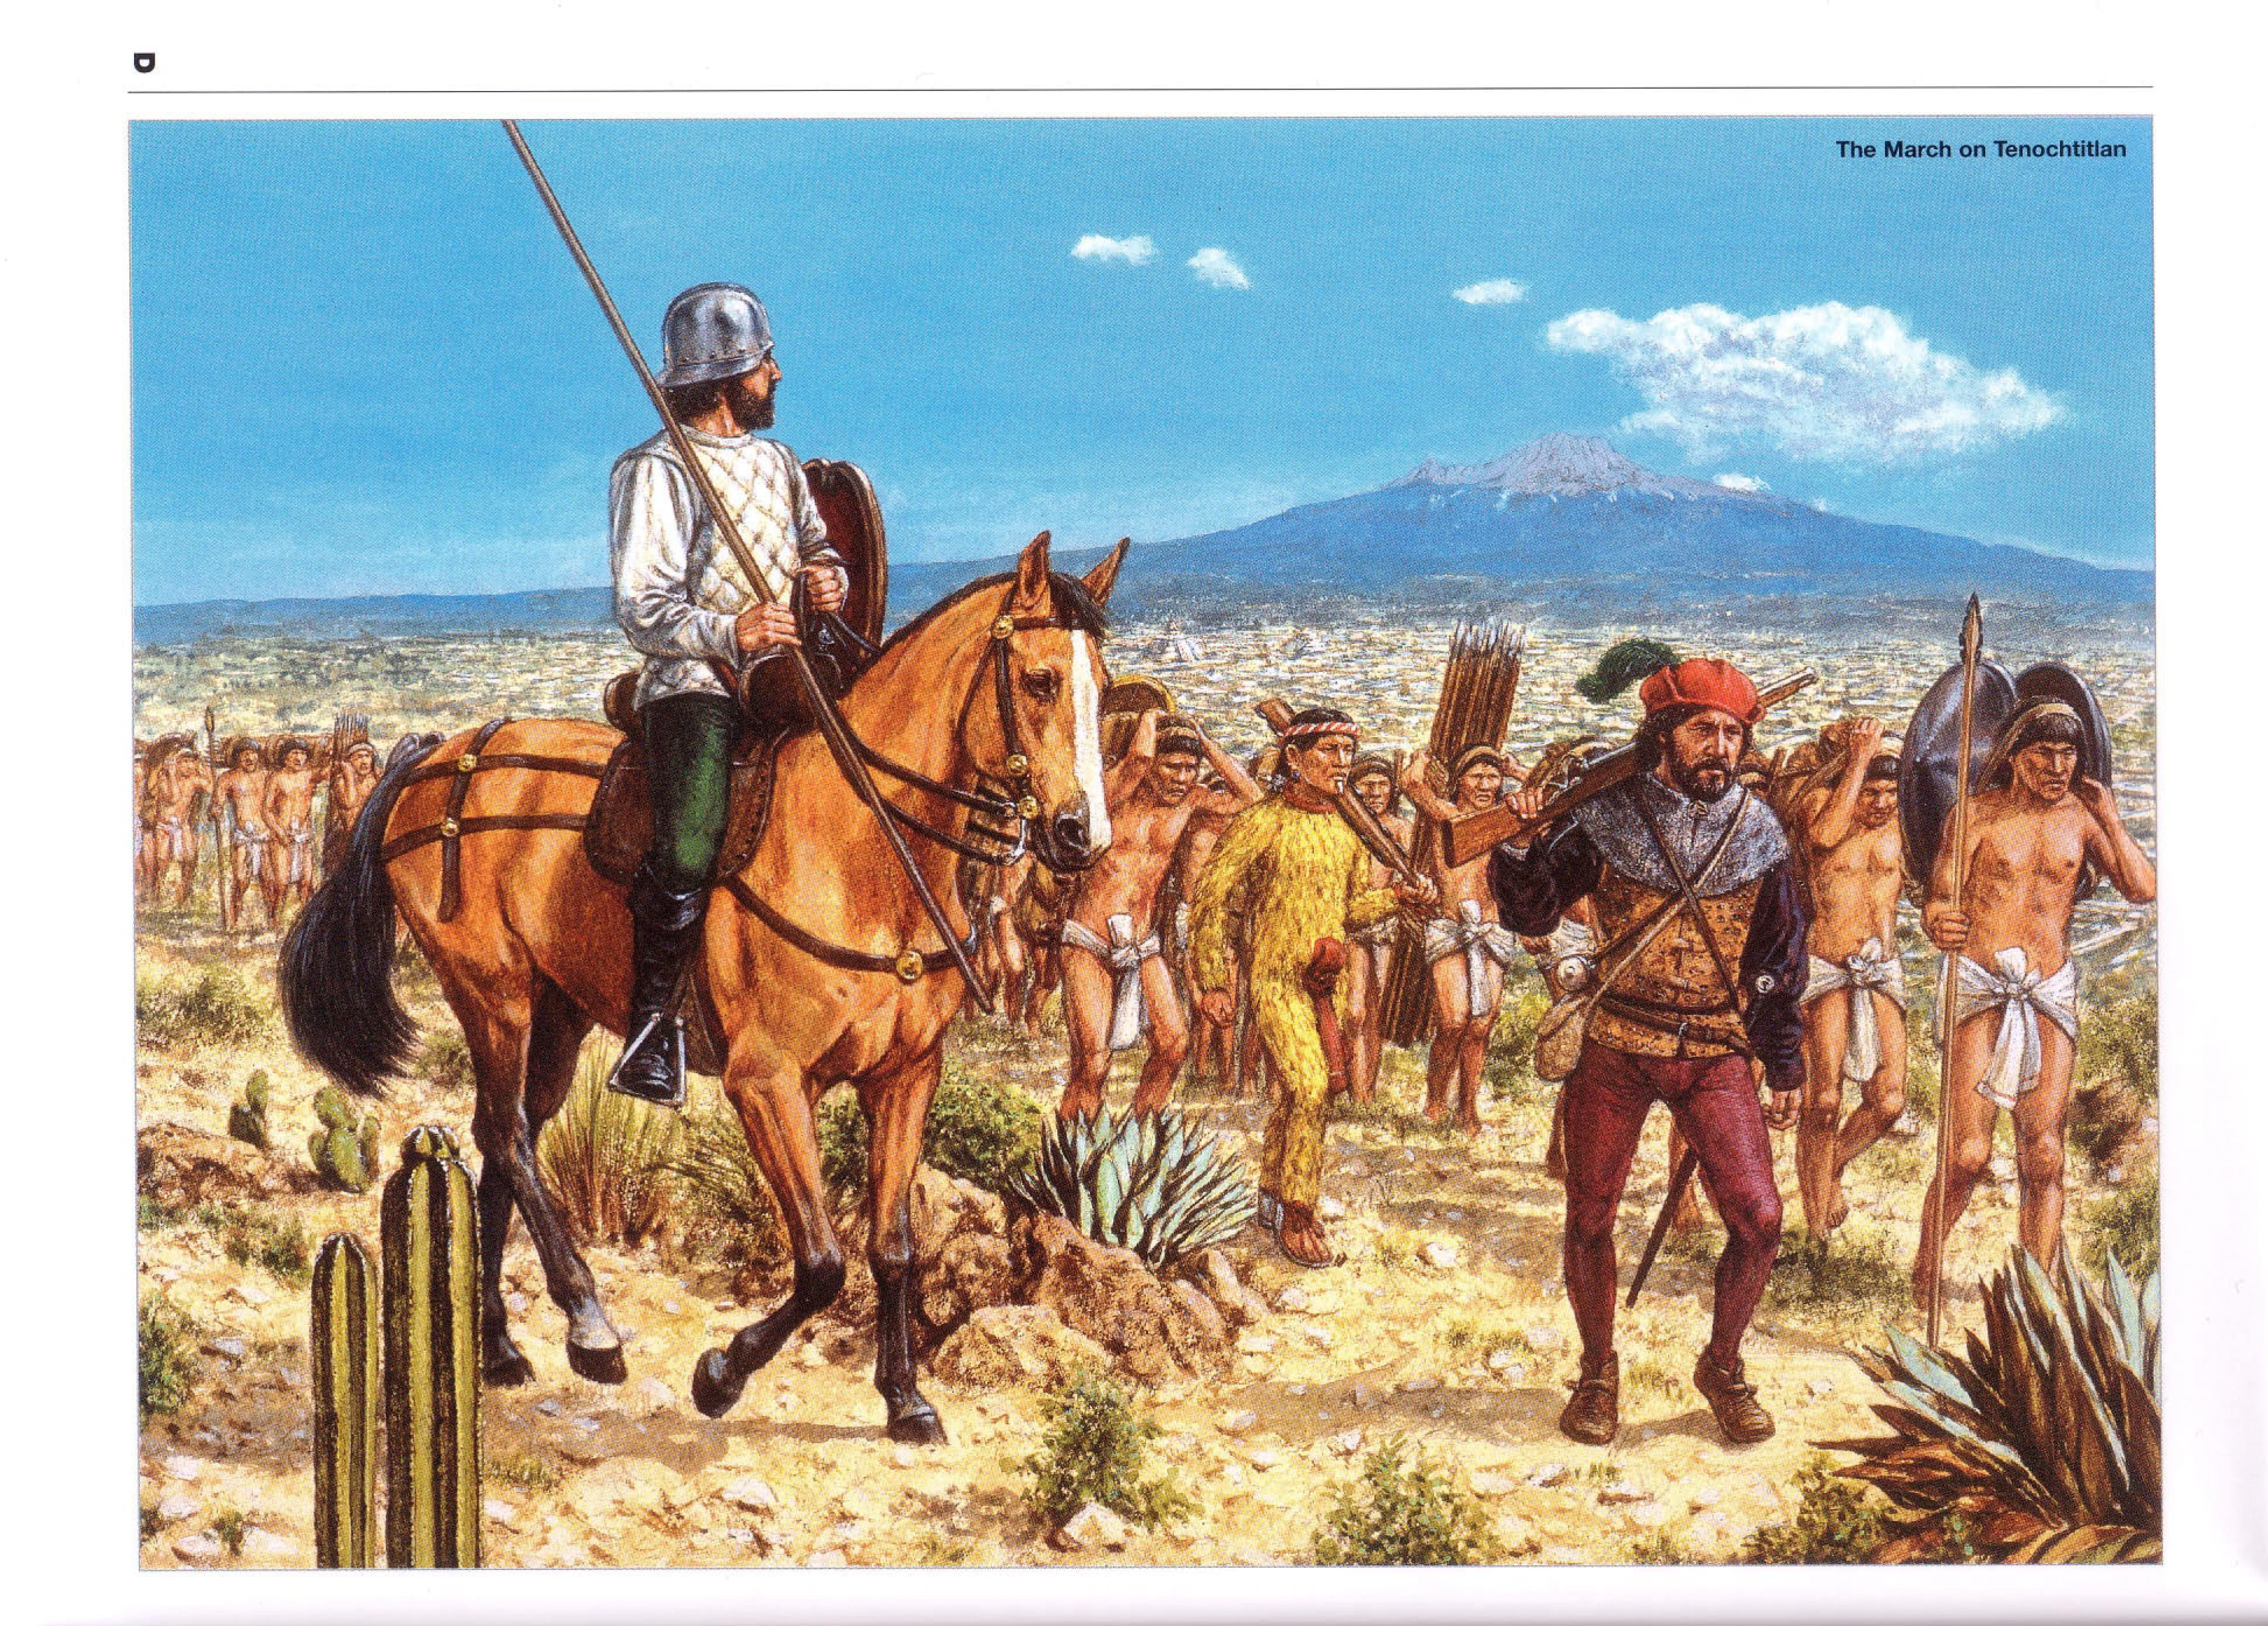 the conquest of the americas Summary: conquest of the americas name date chapter 3, lesson 4 cortés conquers the aztecs european rulers wanted explorers to find riches to bring back to europe hernán cortés led an.